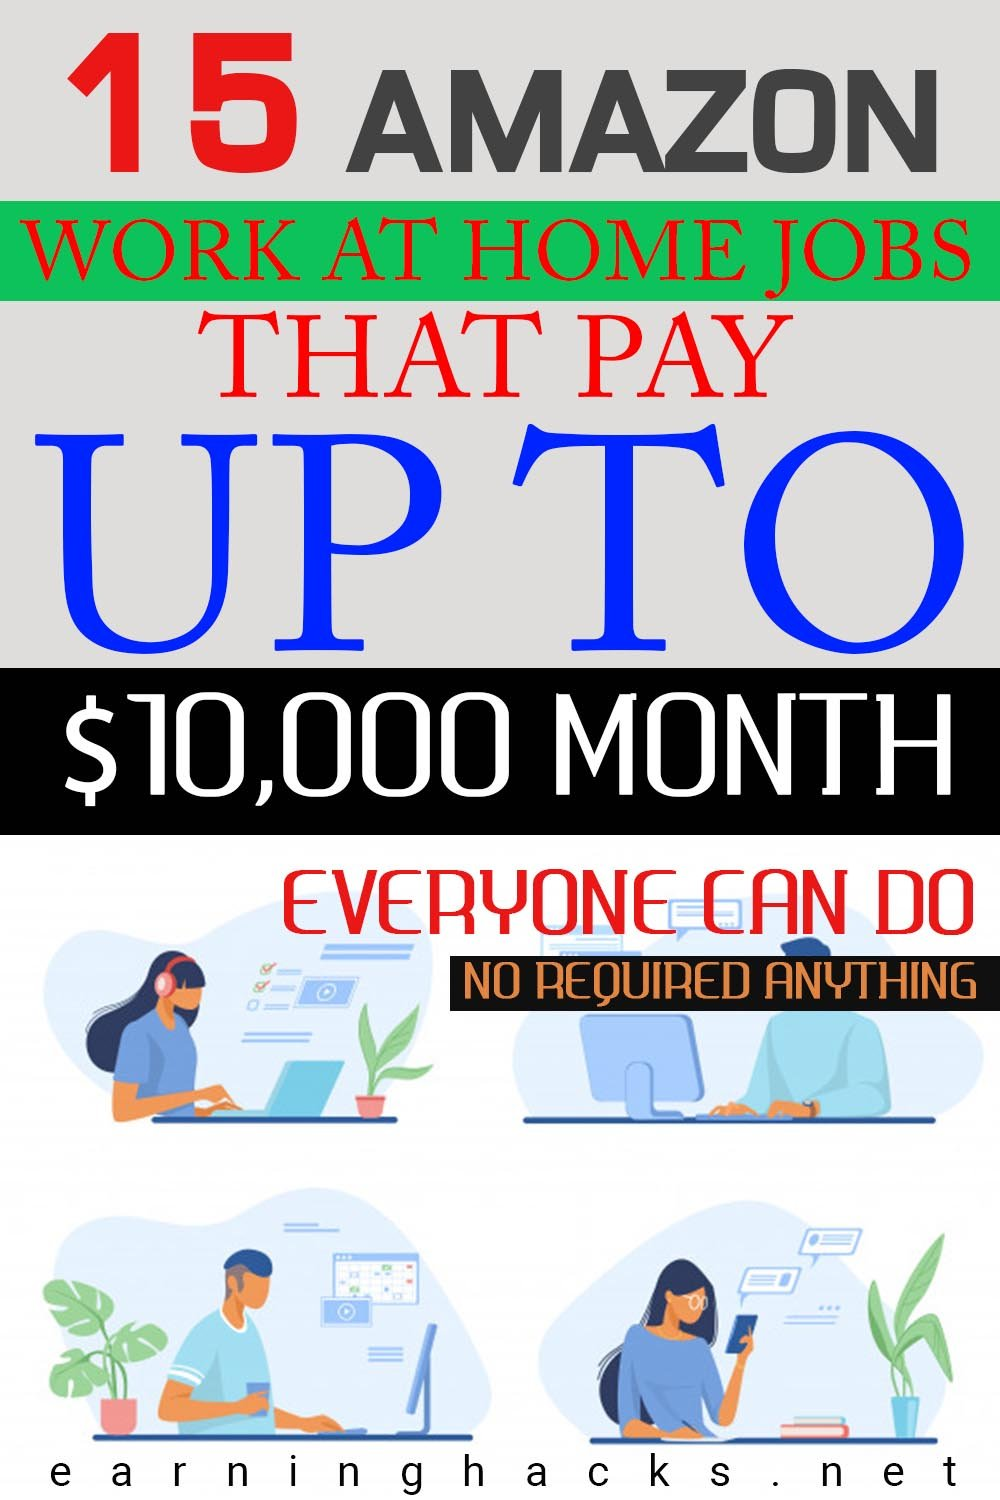 15 Amazon Work at Home Jobs That Pay Up to $10,000/Month